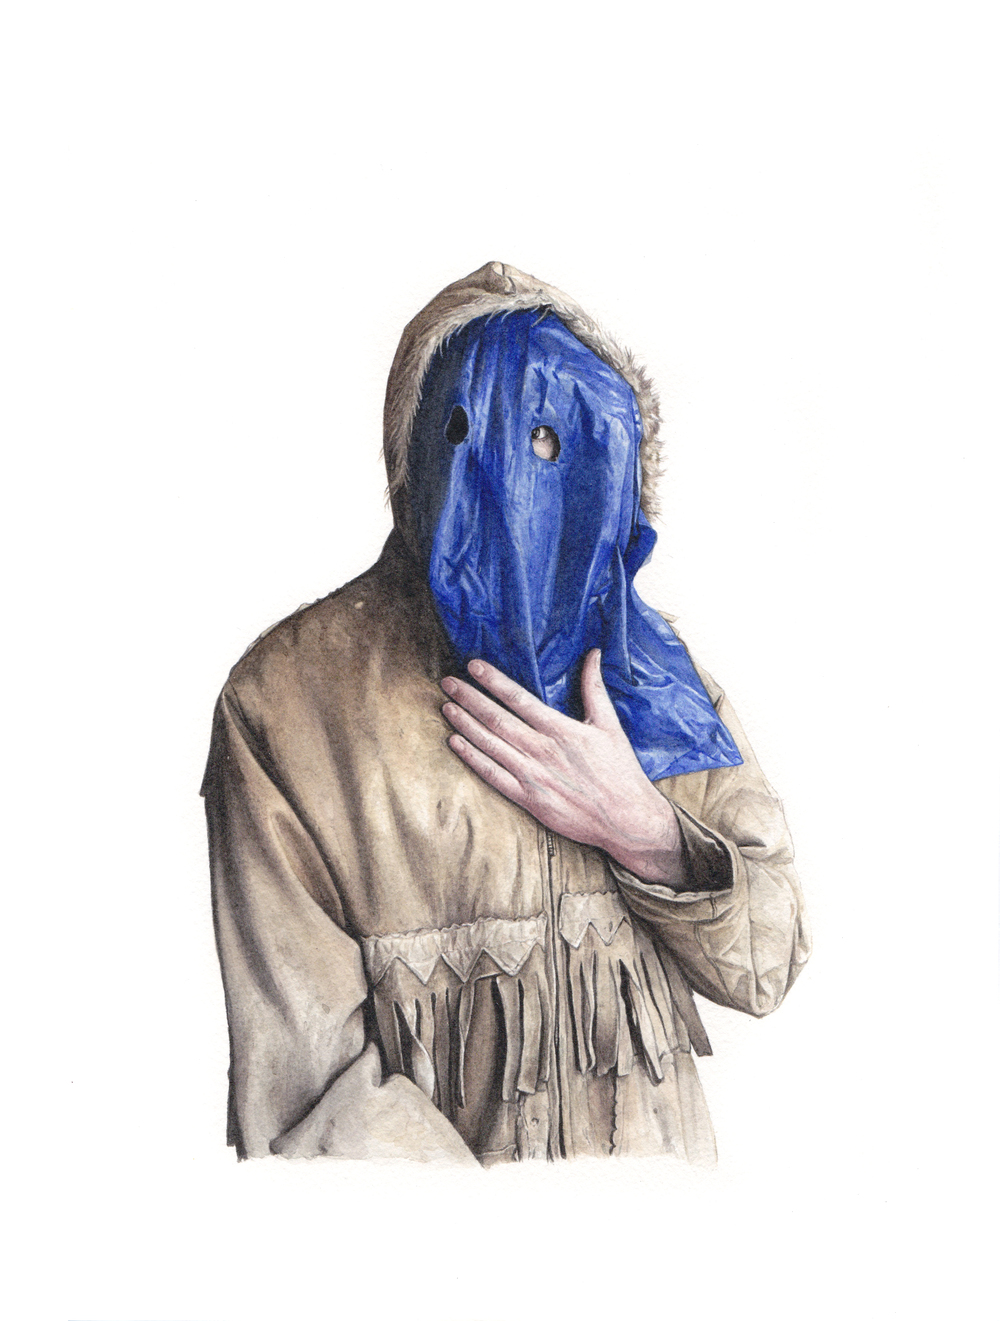 Opa's coat and tarp, 2015. watercolour on paper, 12x9